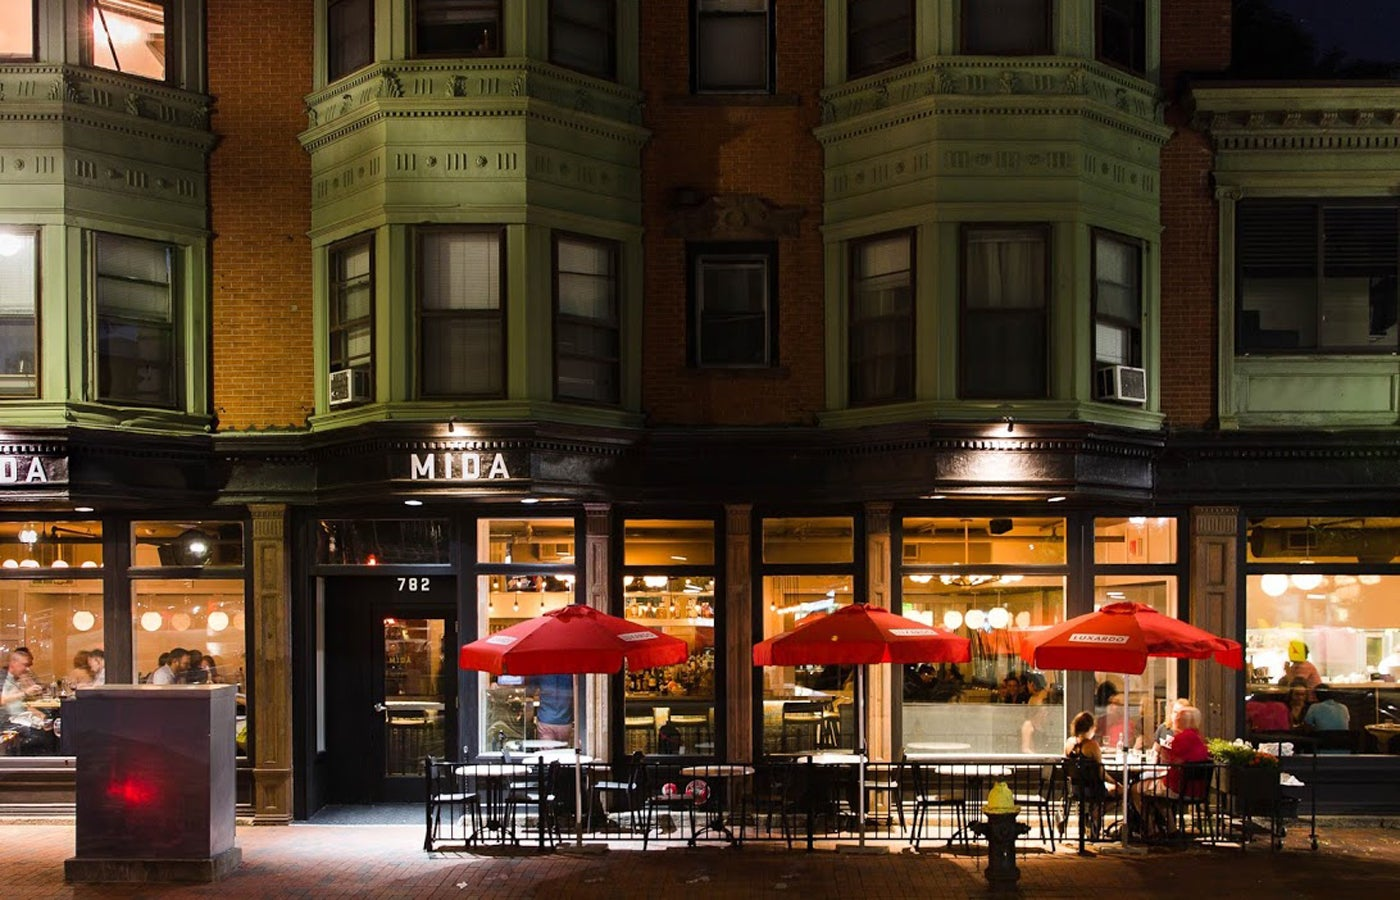 Mida restaurant in the South End.